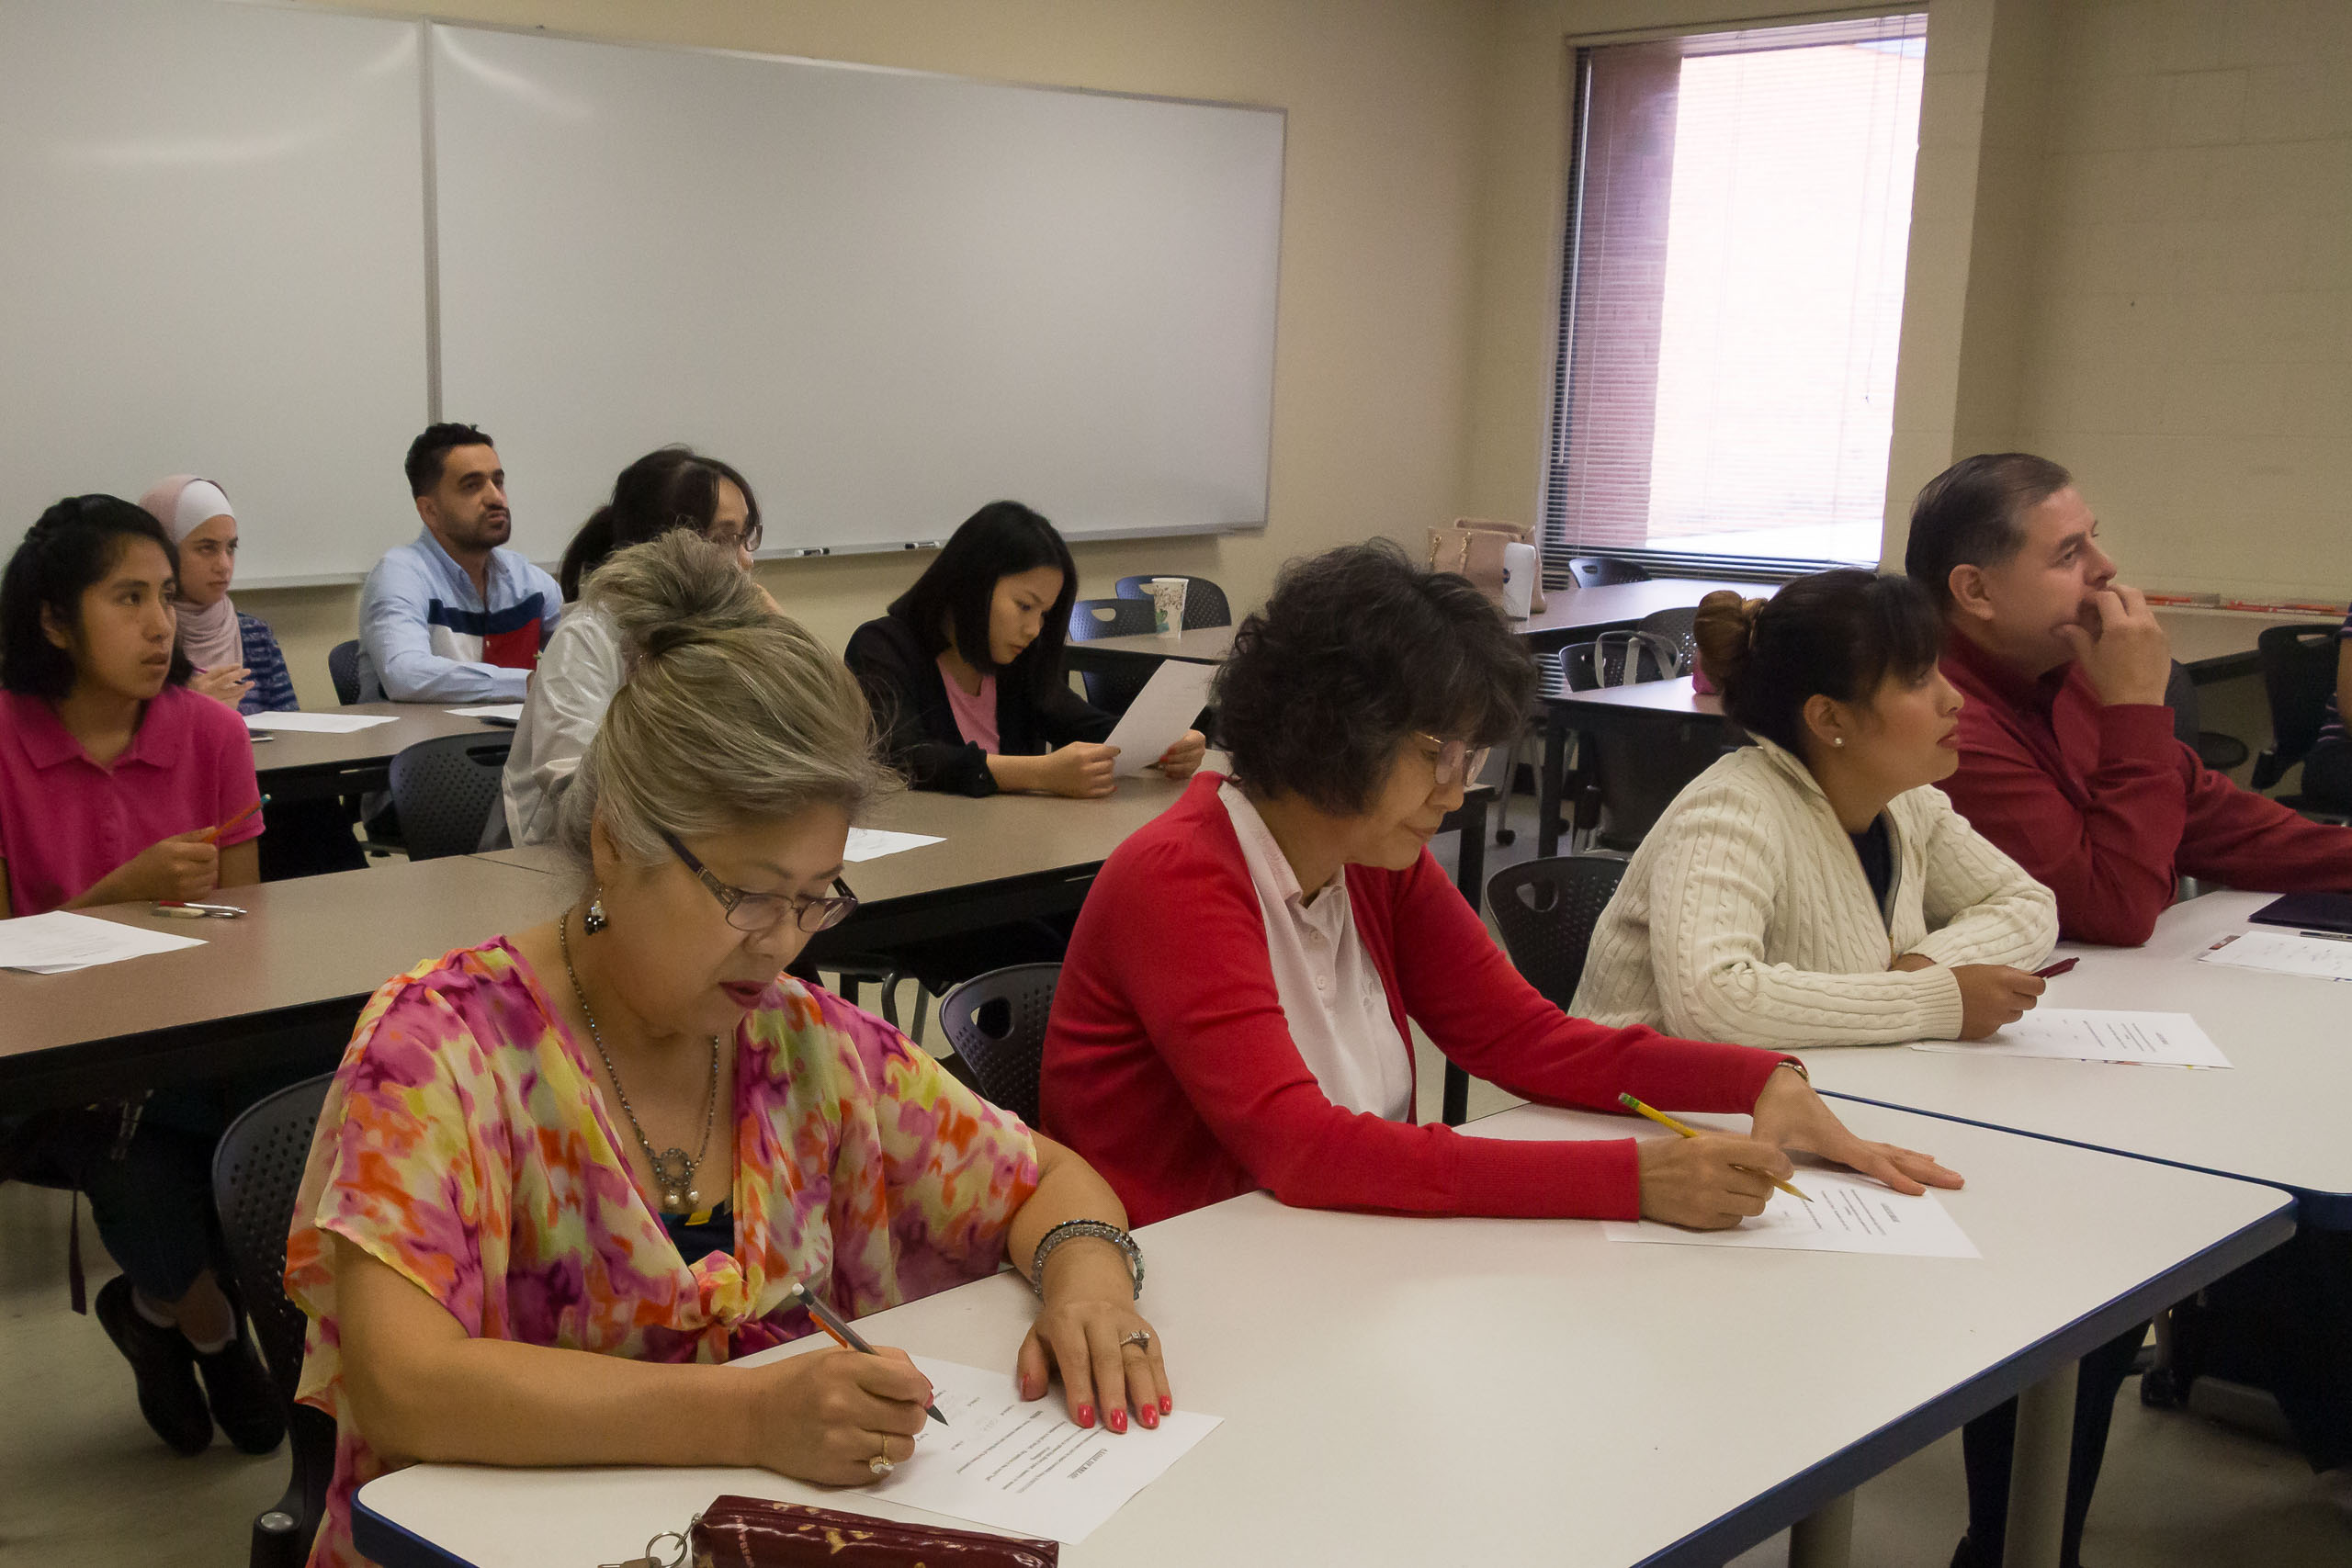 Photo of students working on an assignment in an English as a second language course.